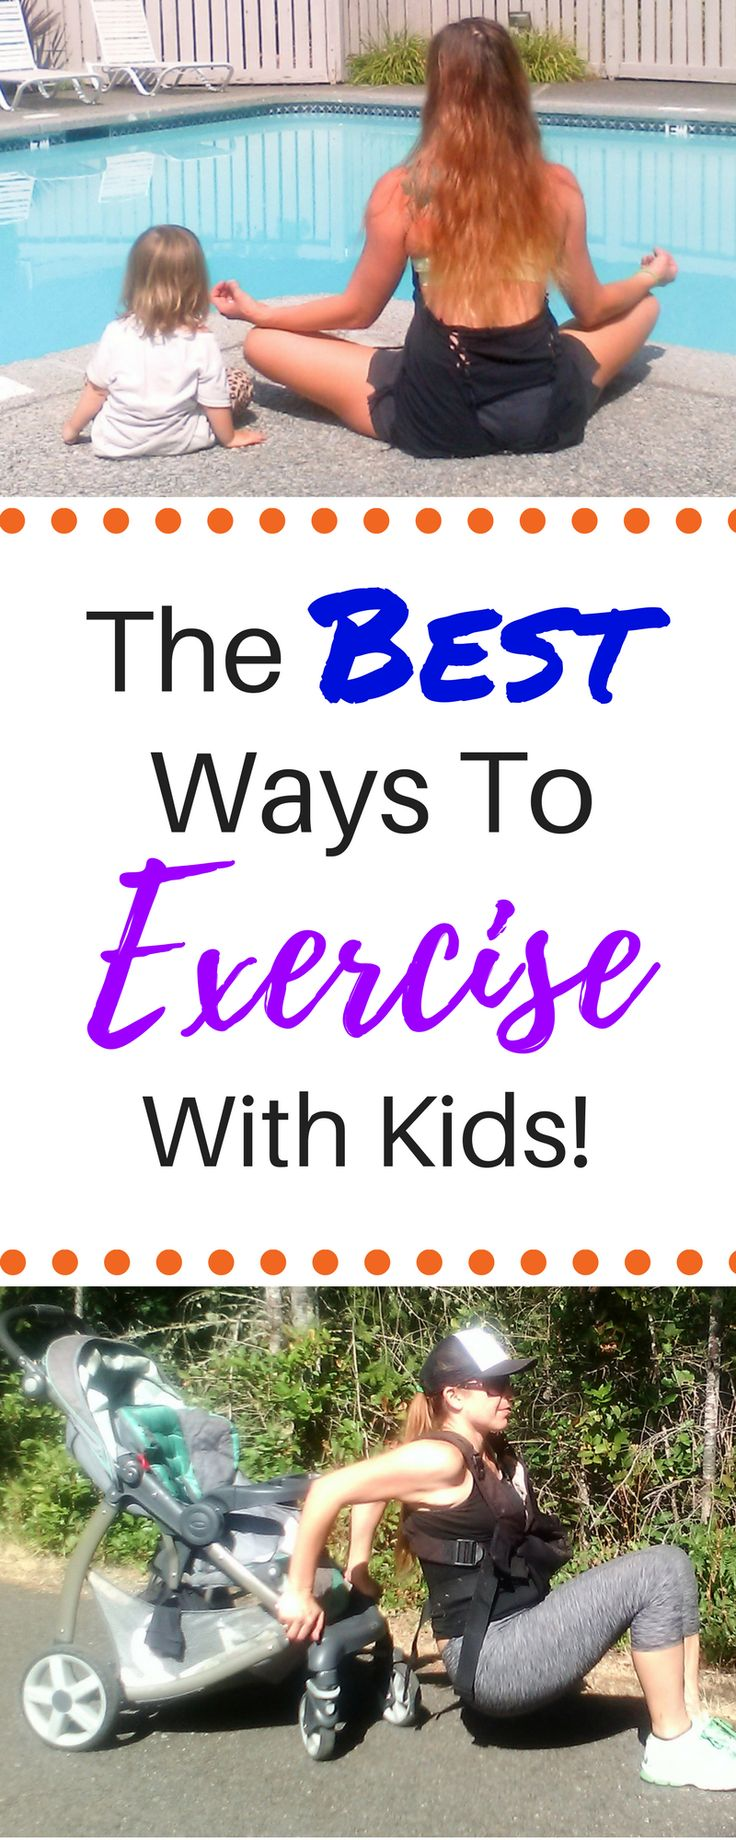 How to exercise with kids 101! This gives you TONS of ideas on how to exercise with baby and how to exercise with kids. You will learn how to do stroller workouts and workout with baby in a carrier. You can complete all these activities at home with toddlers and older children too! These fitness workouts are the best healthy ways for mom to get in strength training, weight loss, and post pregnancy workouts for you and for kids!